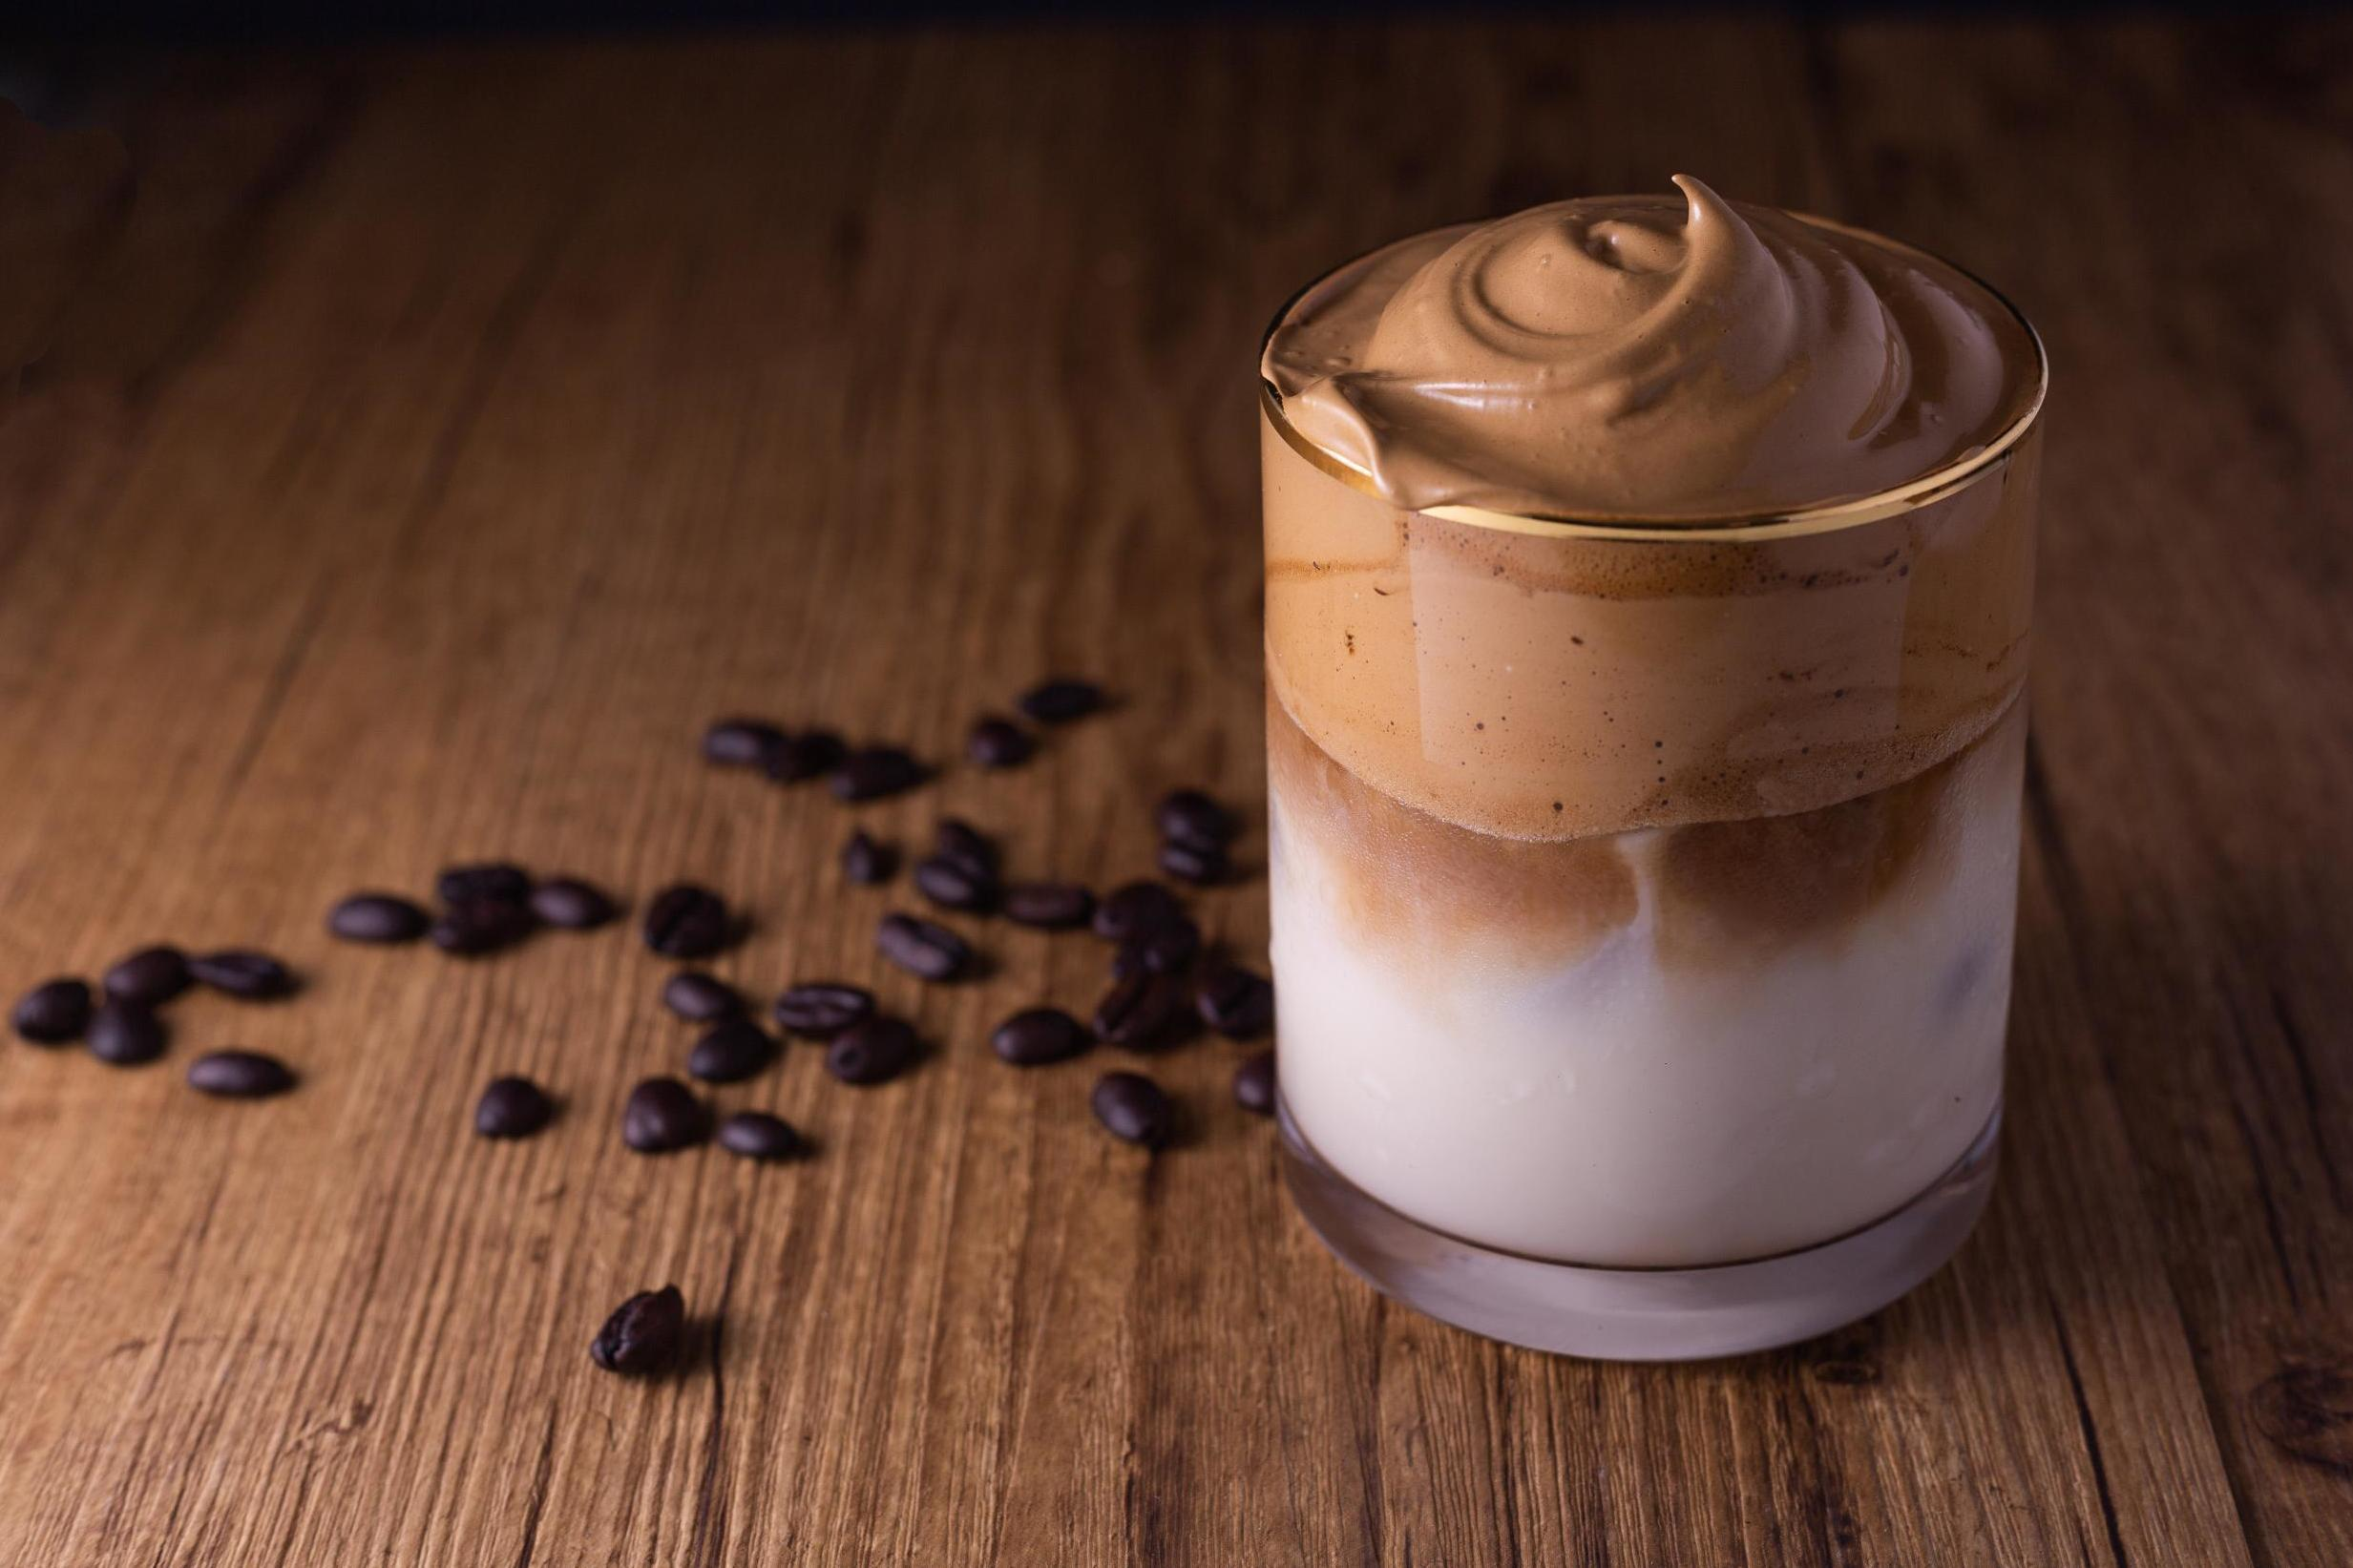 Dalgona coffee: How to make the trendy whipped caffeinated beverage | The Independent